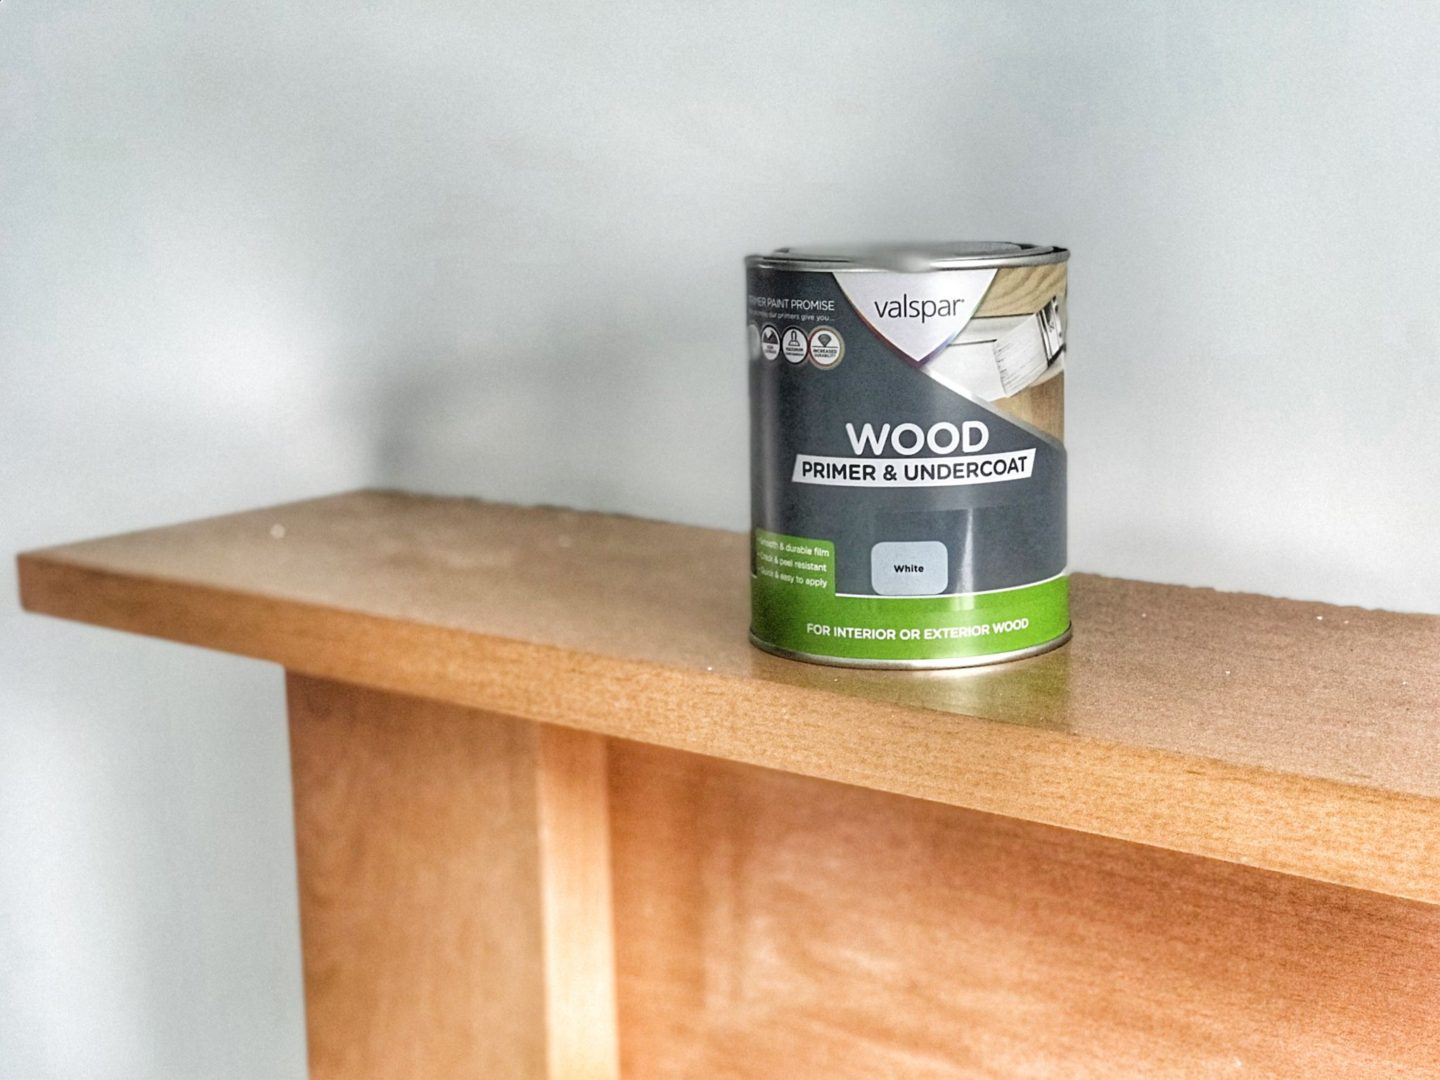 a tin of valspar wood primer rests on top of the wooden fireplace